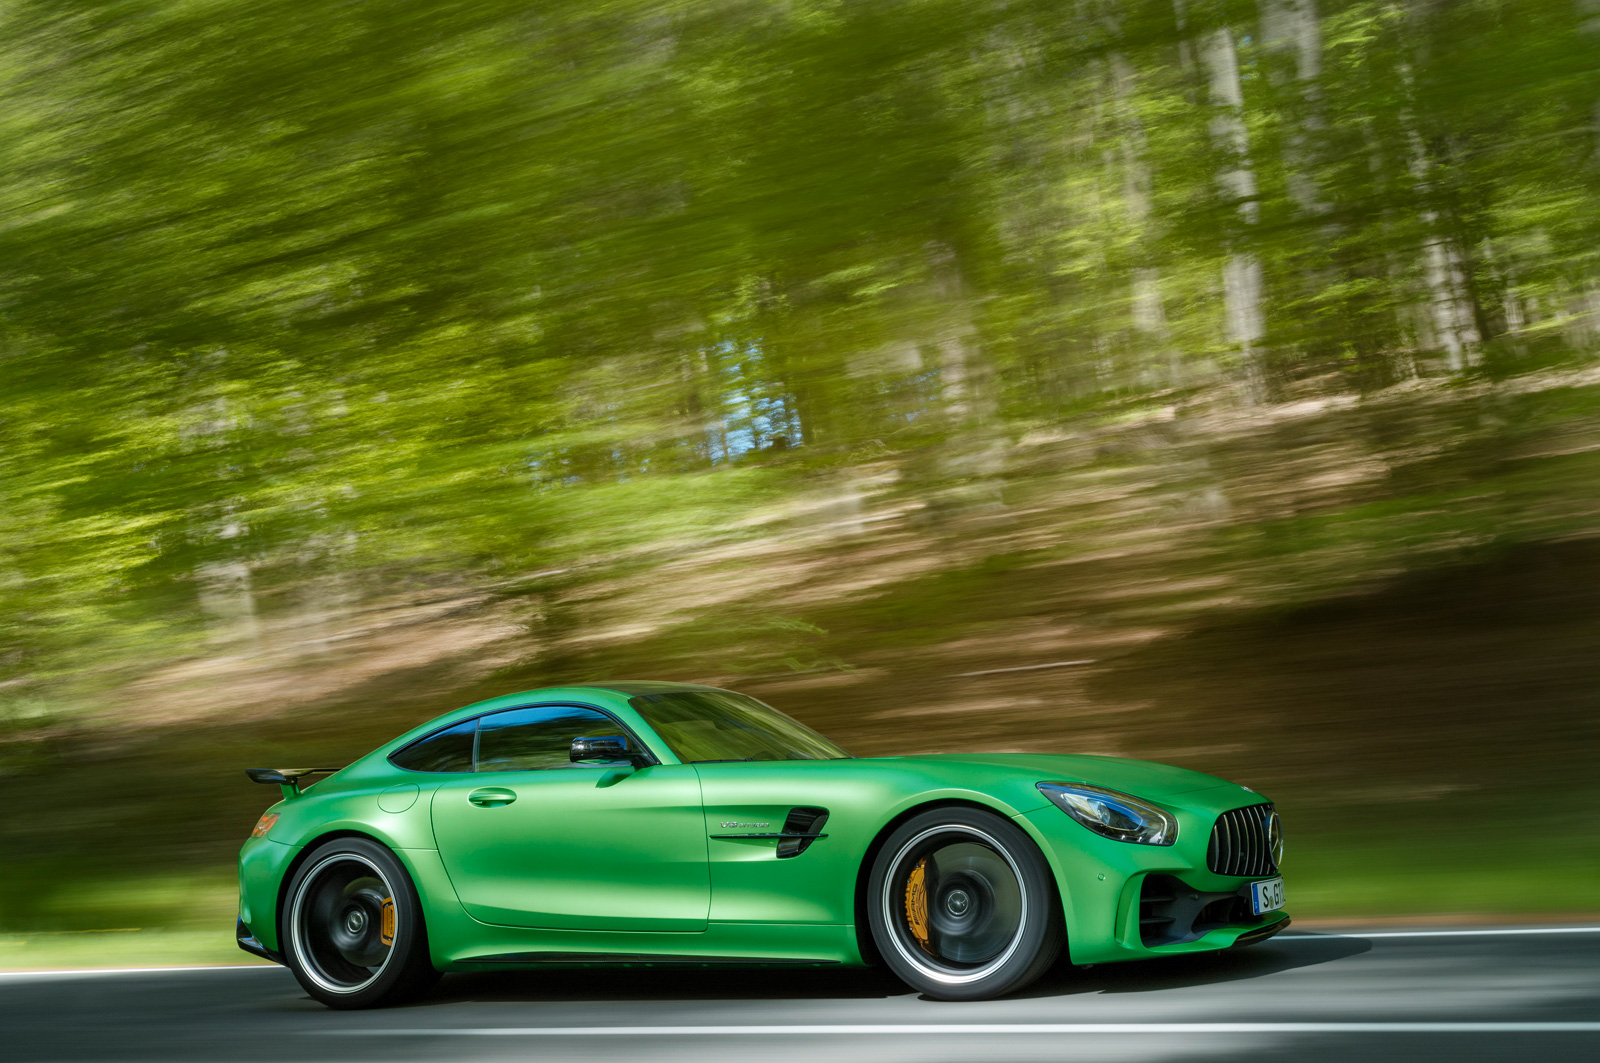 http://www.autoguide.com/blog/wp-content/gallery/mercedes-amg-gt-r-official-photos/mercedes-amg-gt-r-12.jpg